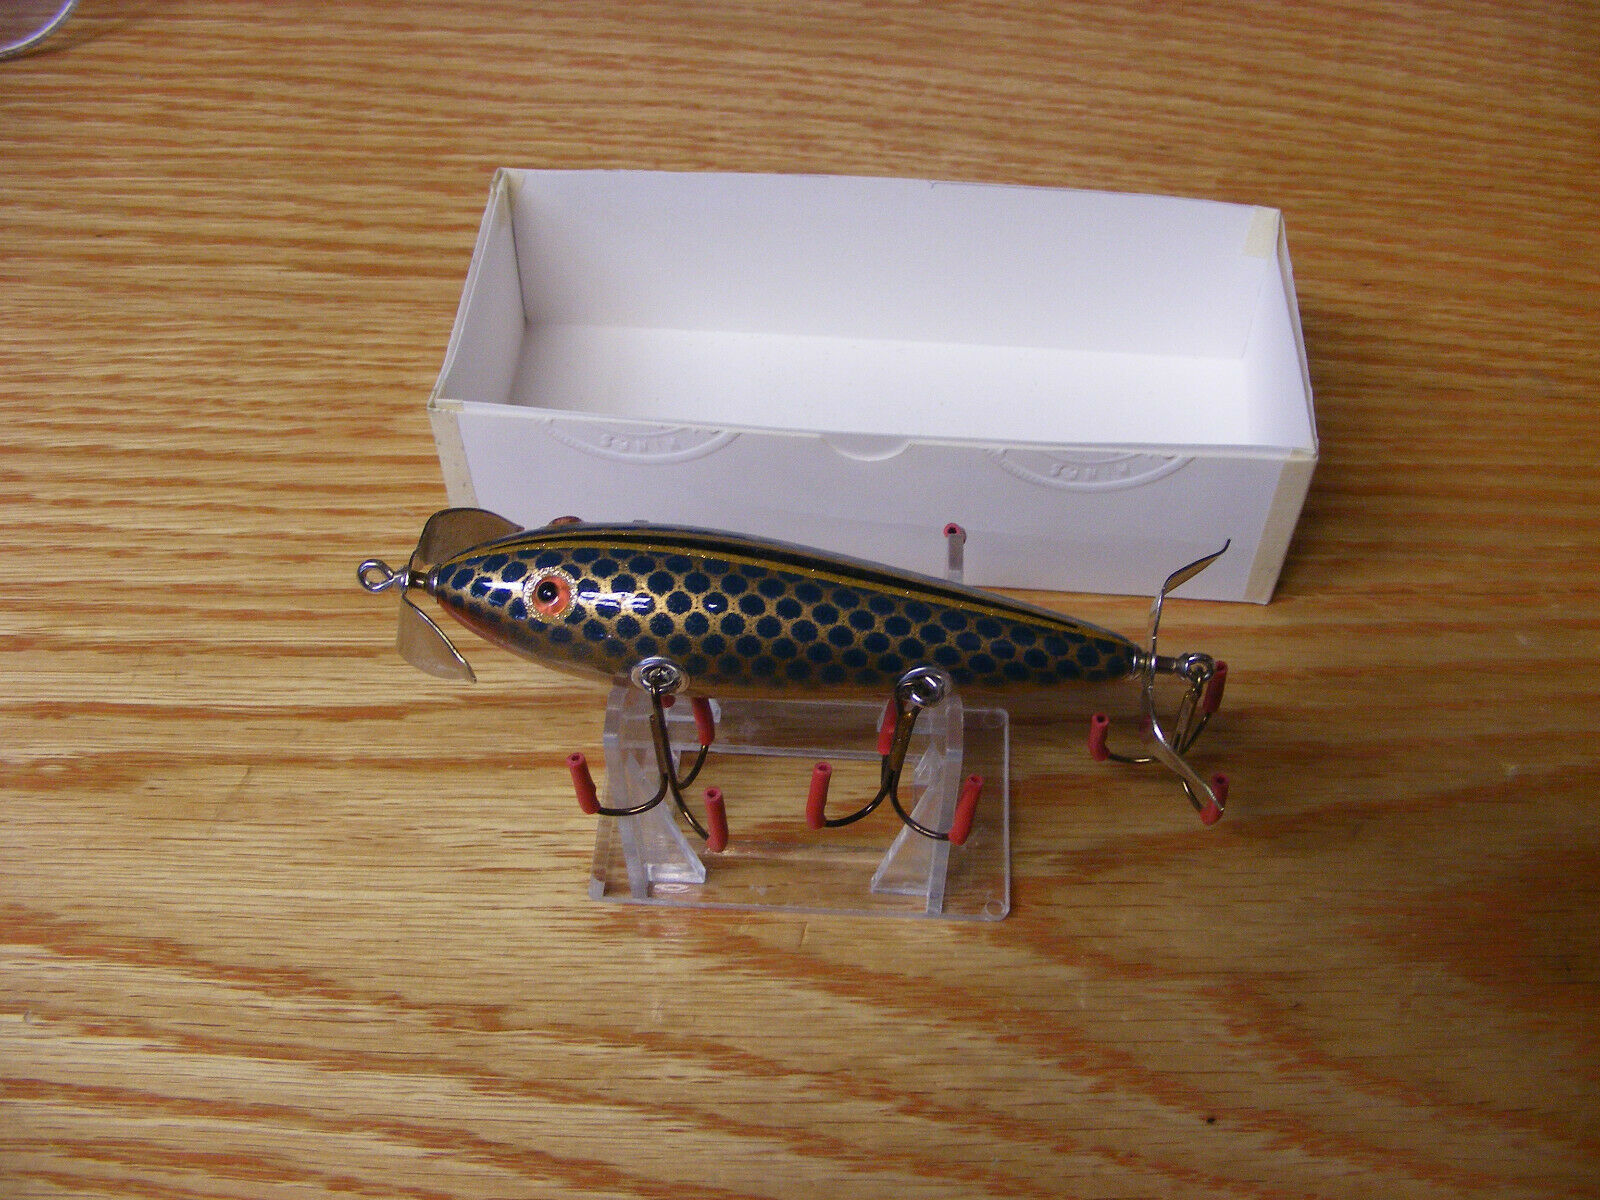 C Hines Heddon Style 150 Minnow in gold with Green Scales color